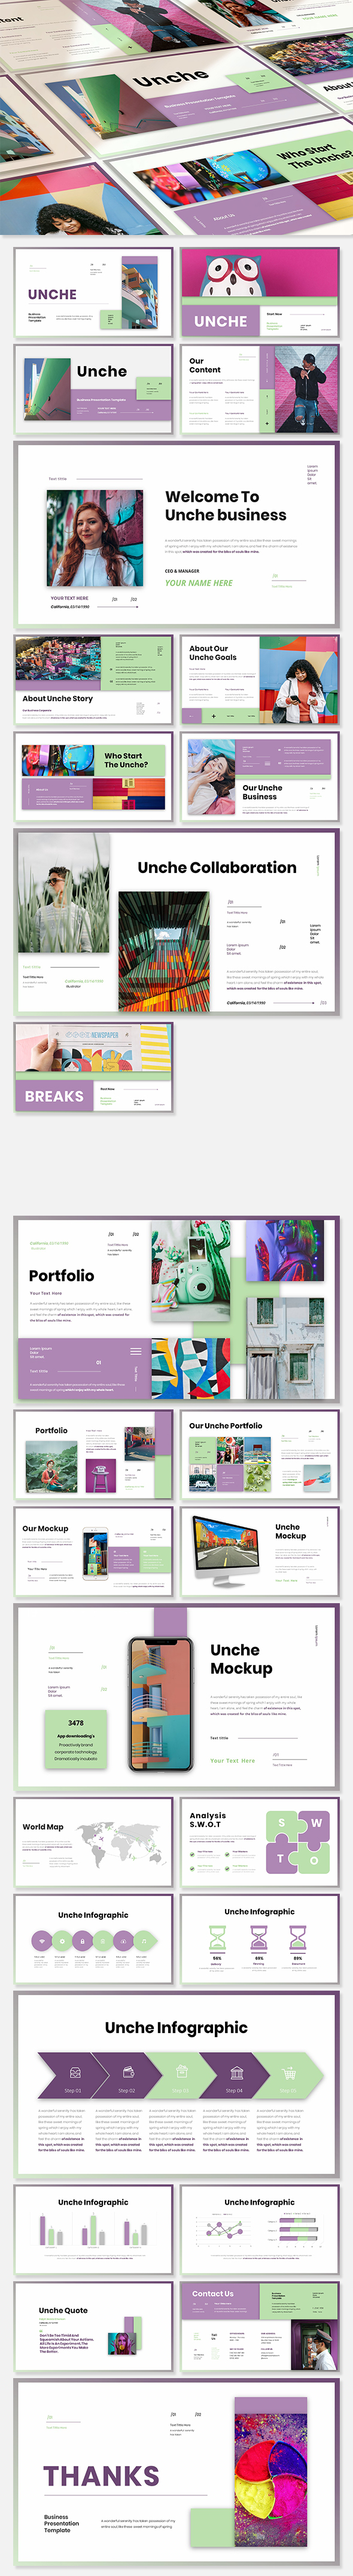 Unche - Business Presentation Keynote Template